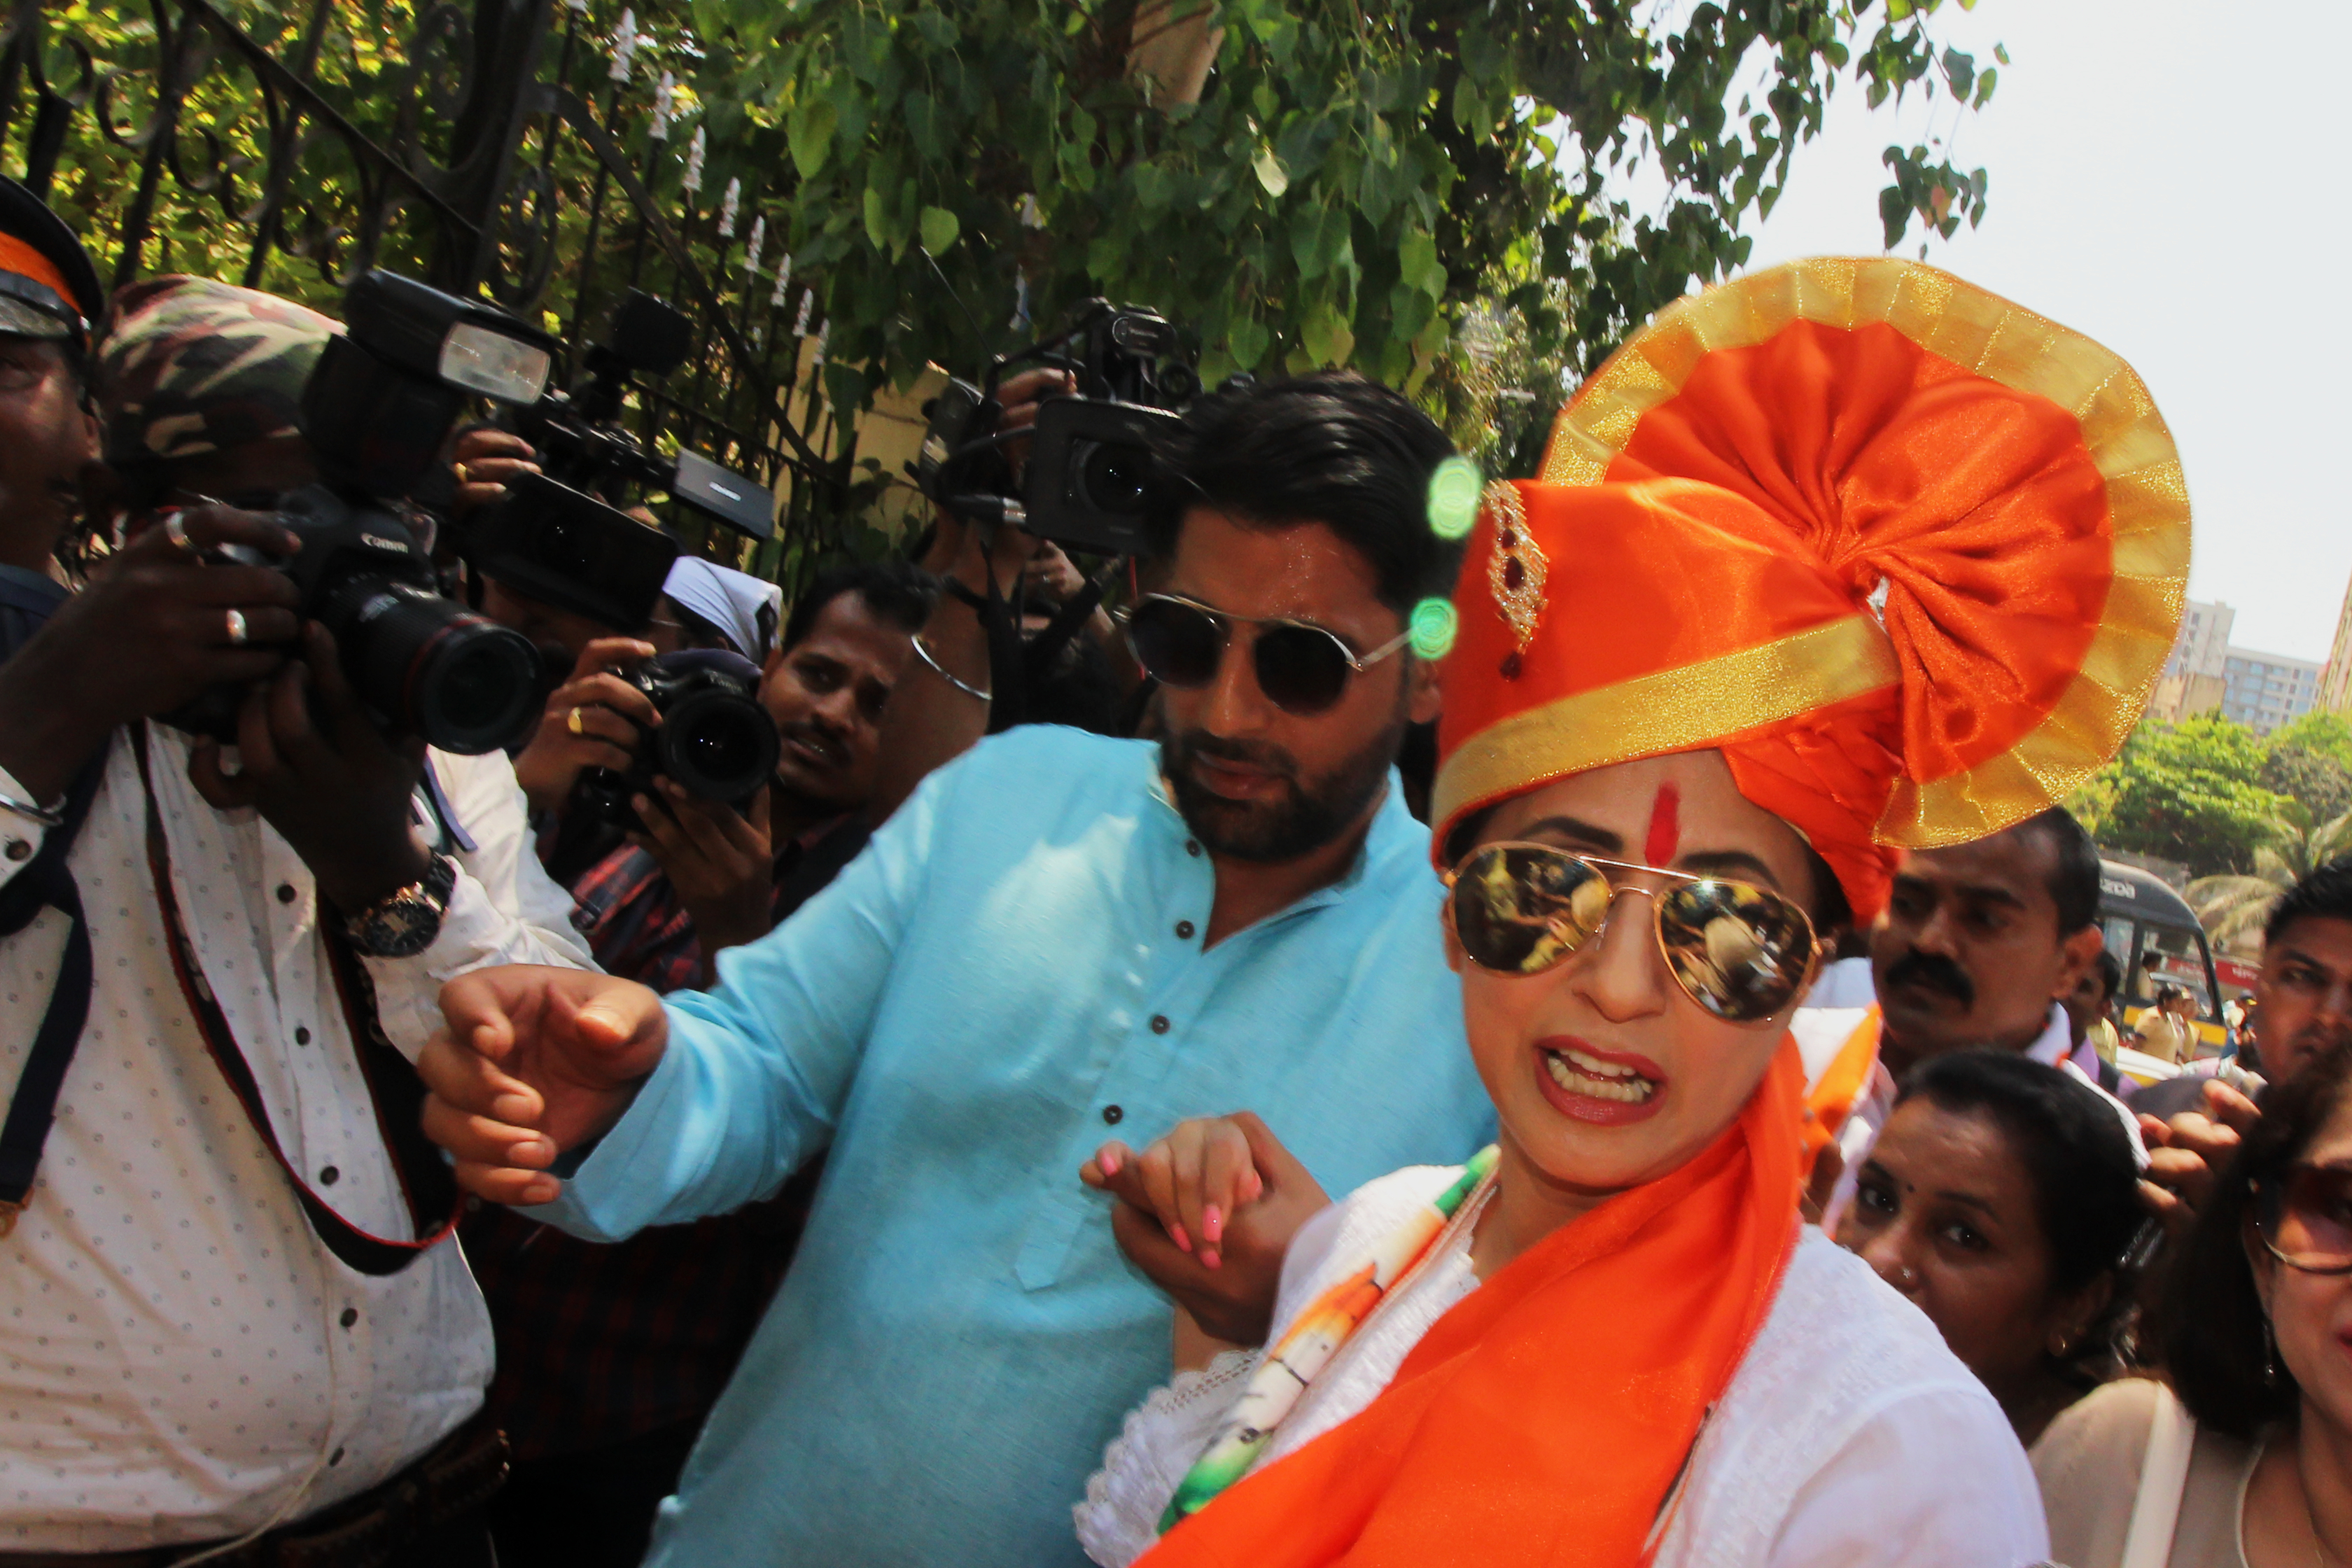 Indian bollywood actress and Congress Party candidate Urmila Matondkar arrives to filing of her nomination for the upcoming Lok Sabha elections in Mumbai, India on 08 April 2019.